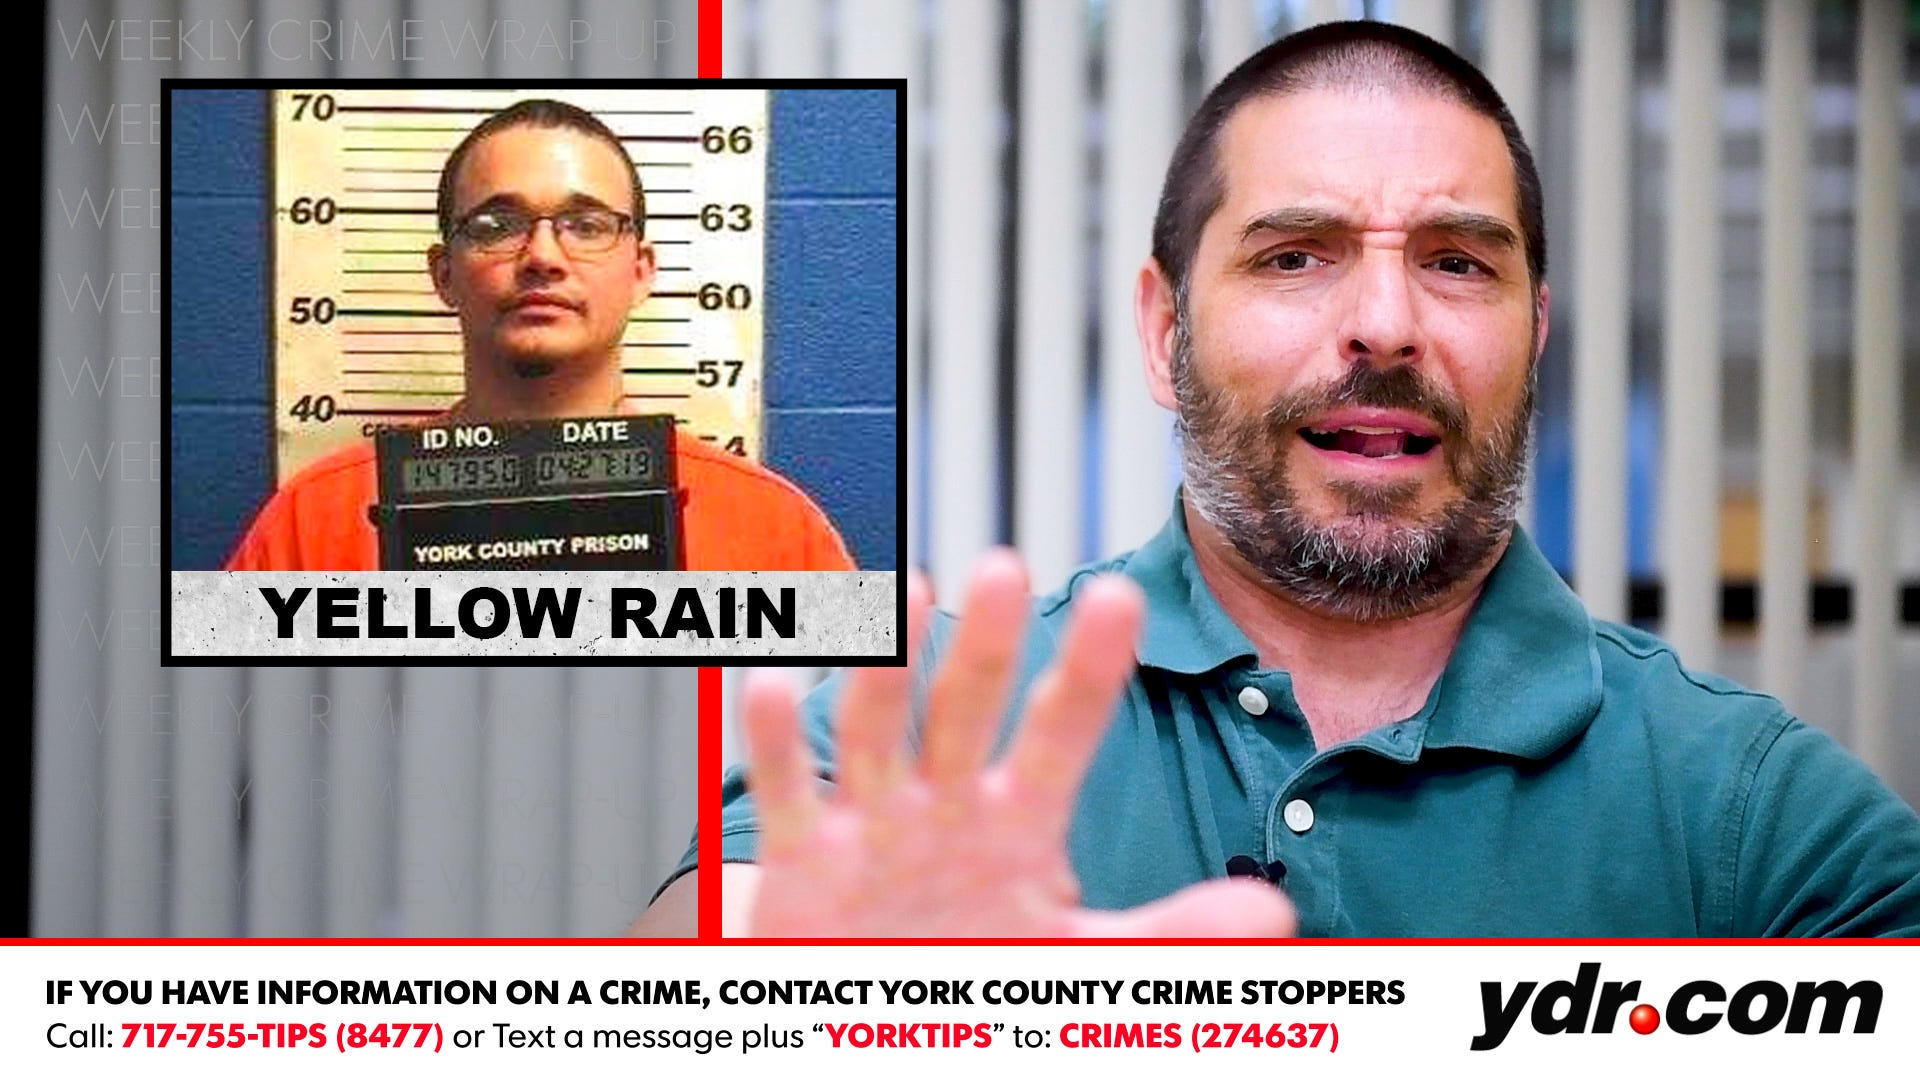 Weekly Crime Wrap-Up: 'Yellow rain'